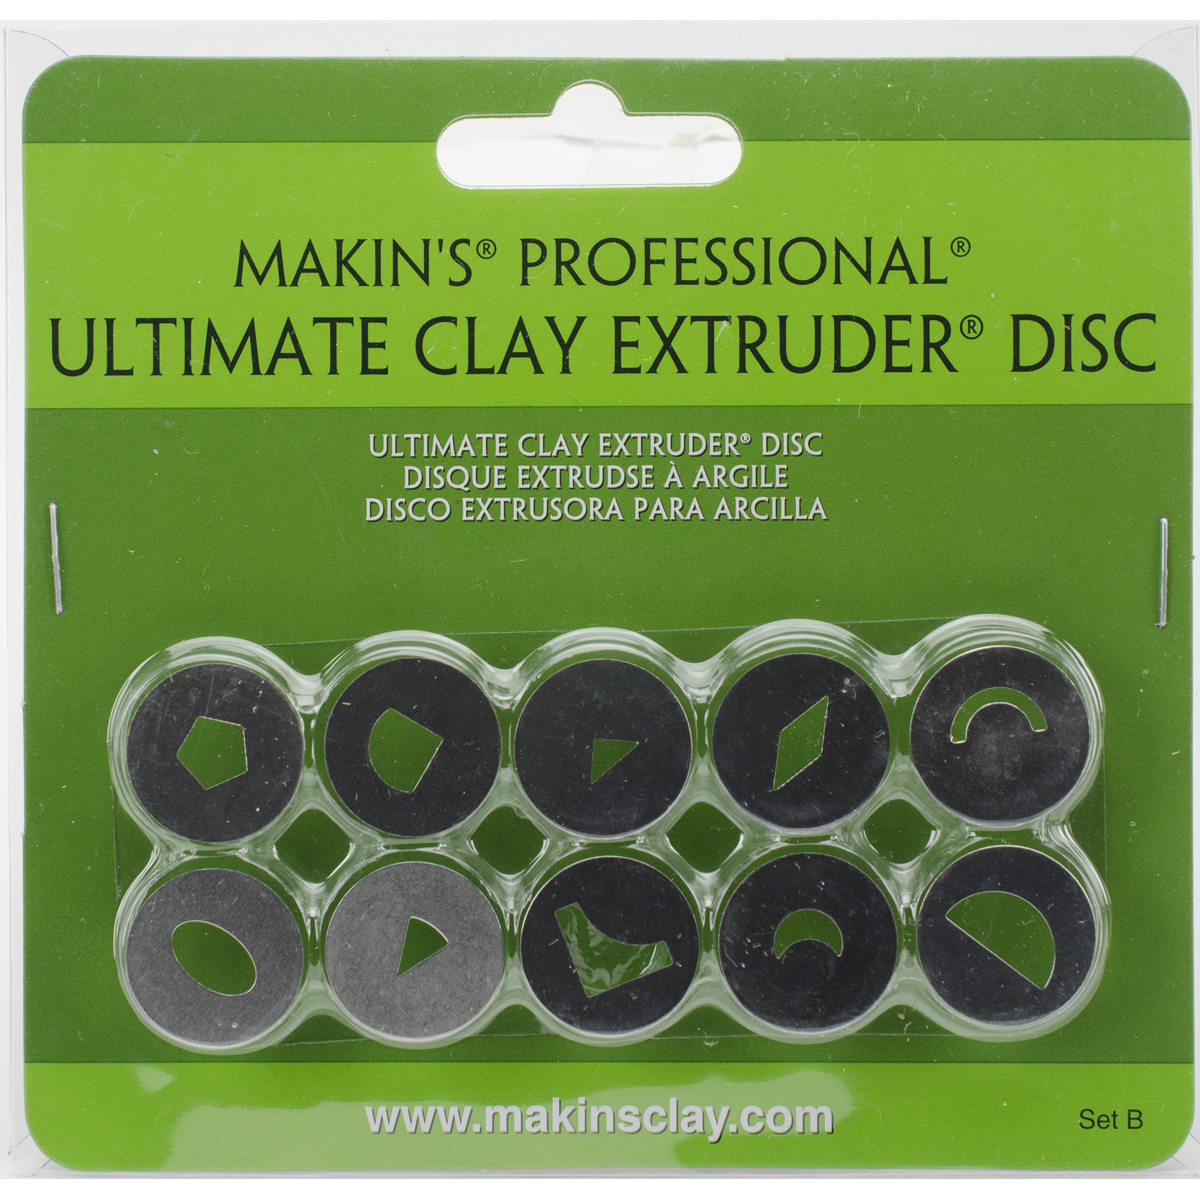 Makin's Professional Ultimate Clay Extruder Discs 10/Pkg-Set B